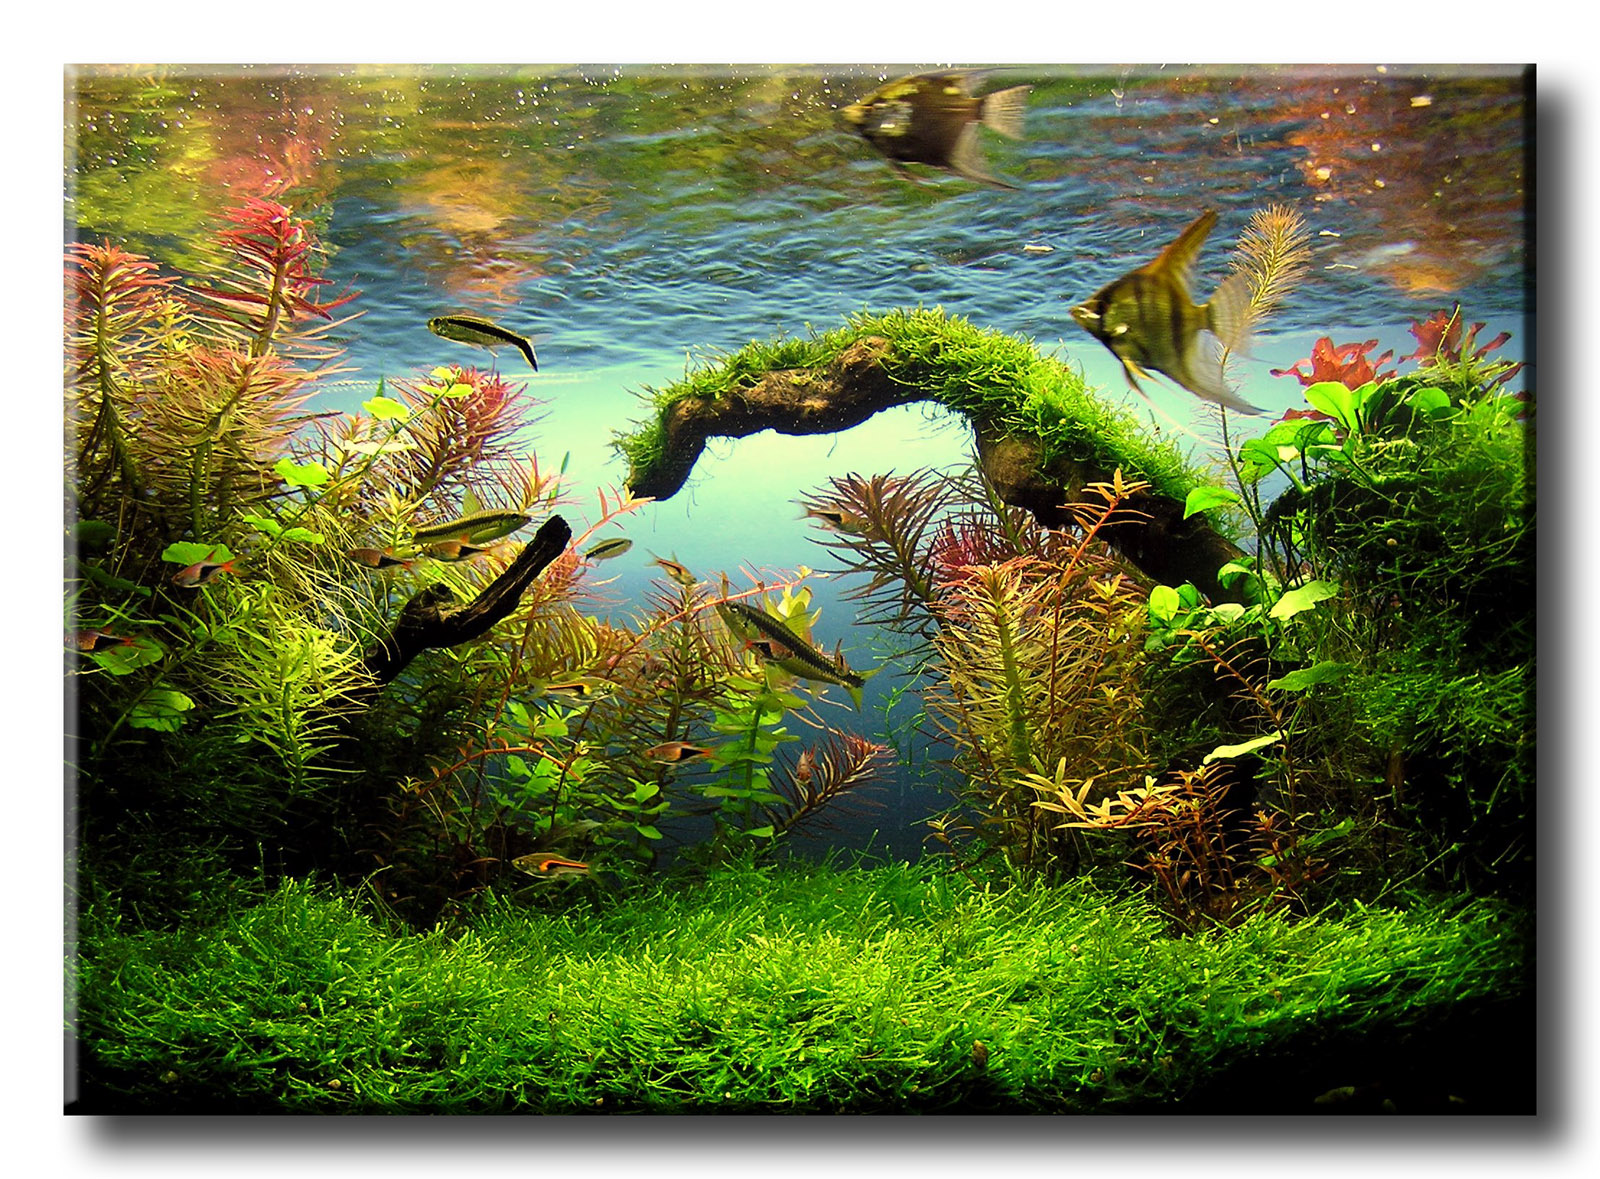 1000 images about aquarium landscapes on pinterest mini Aquarium landscape